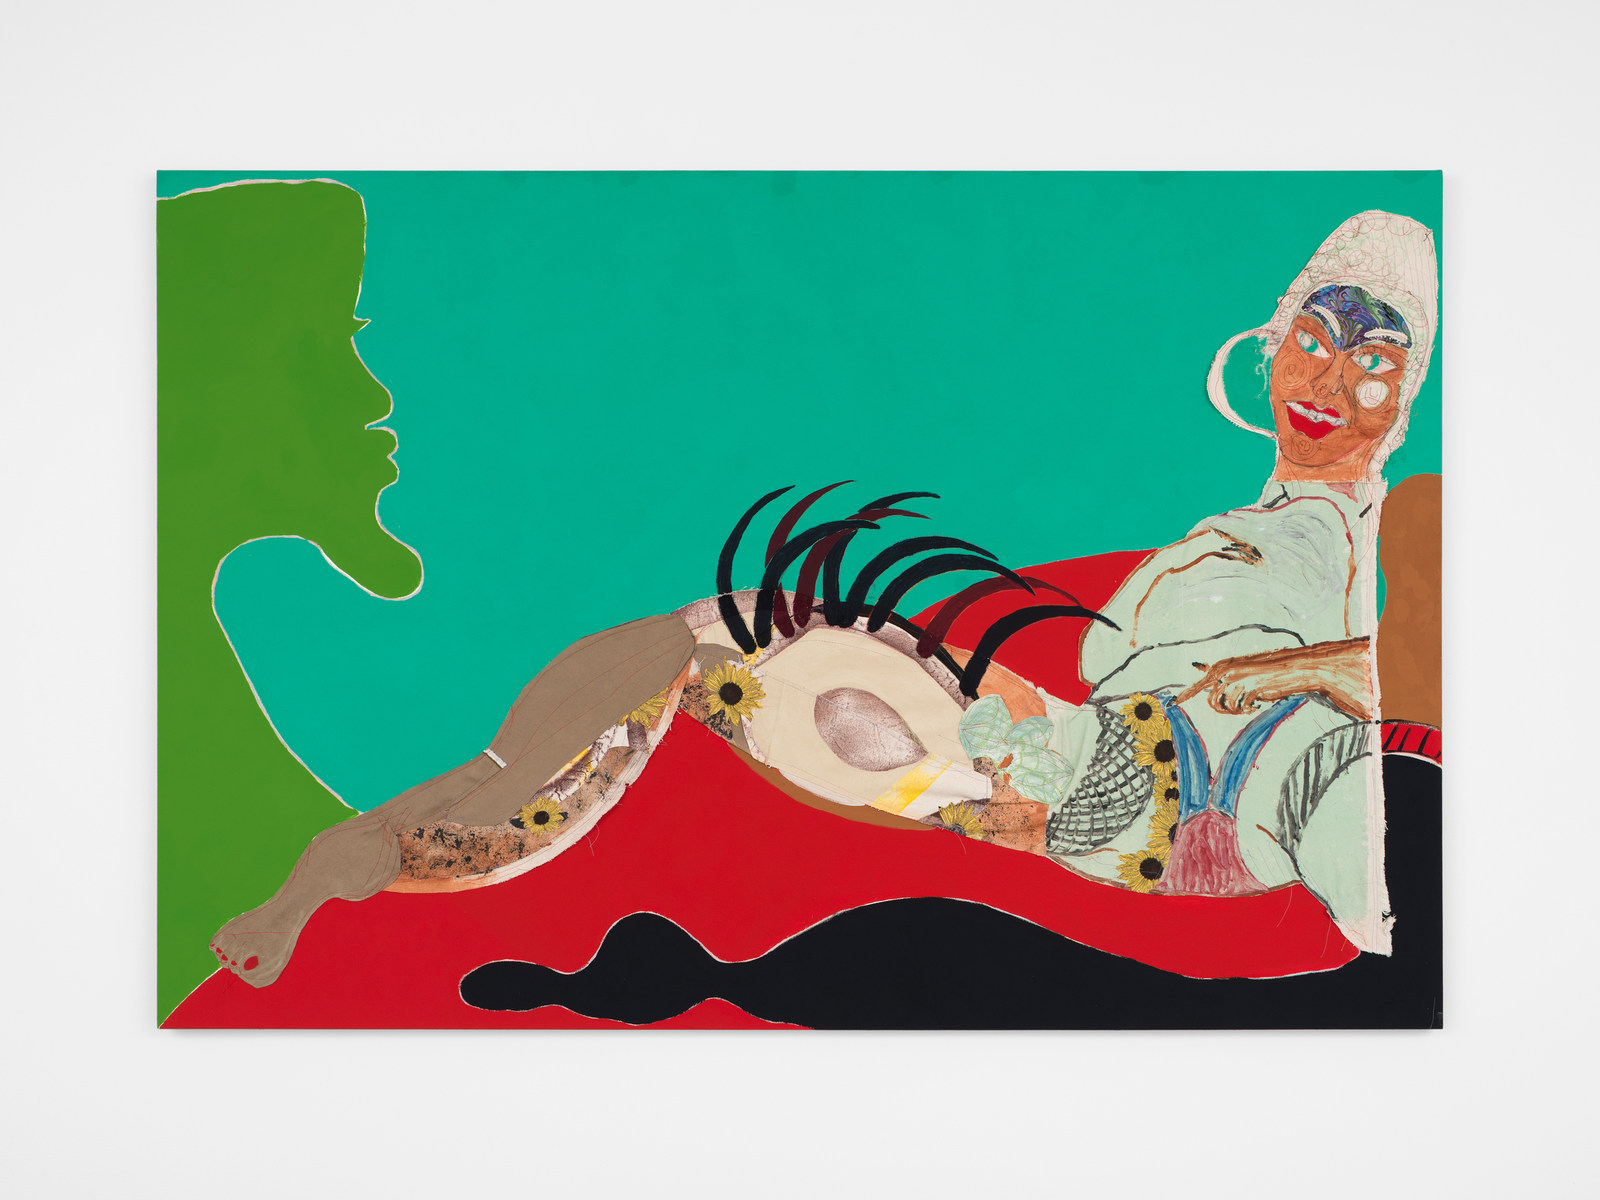 Tschabalala Self, Thigh, 2016 Painted canvas, fabric, oil, acrylic, and flashe on canvas 48 x 72 inches